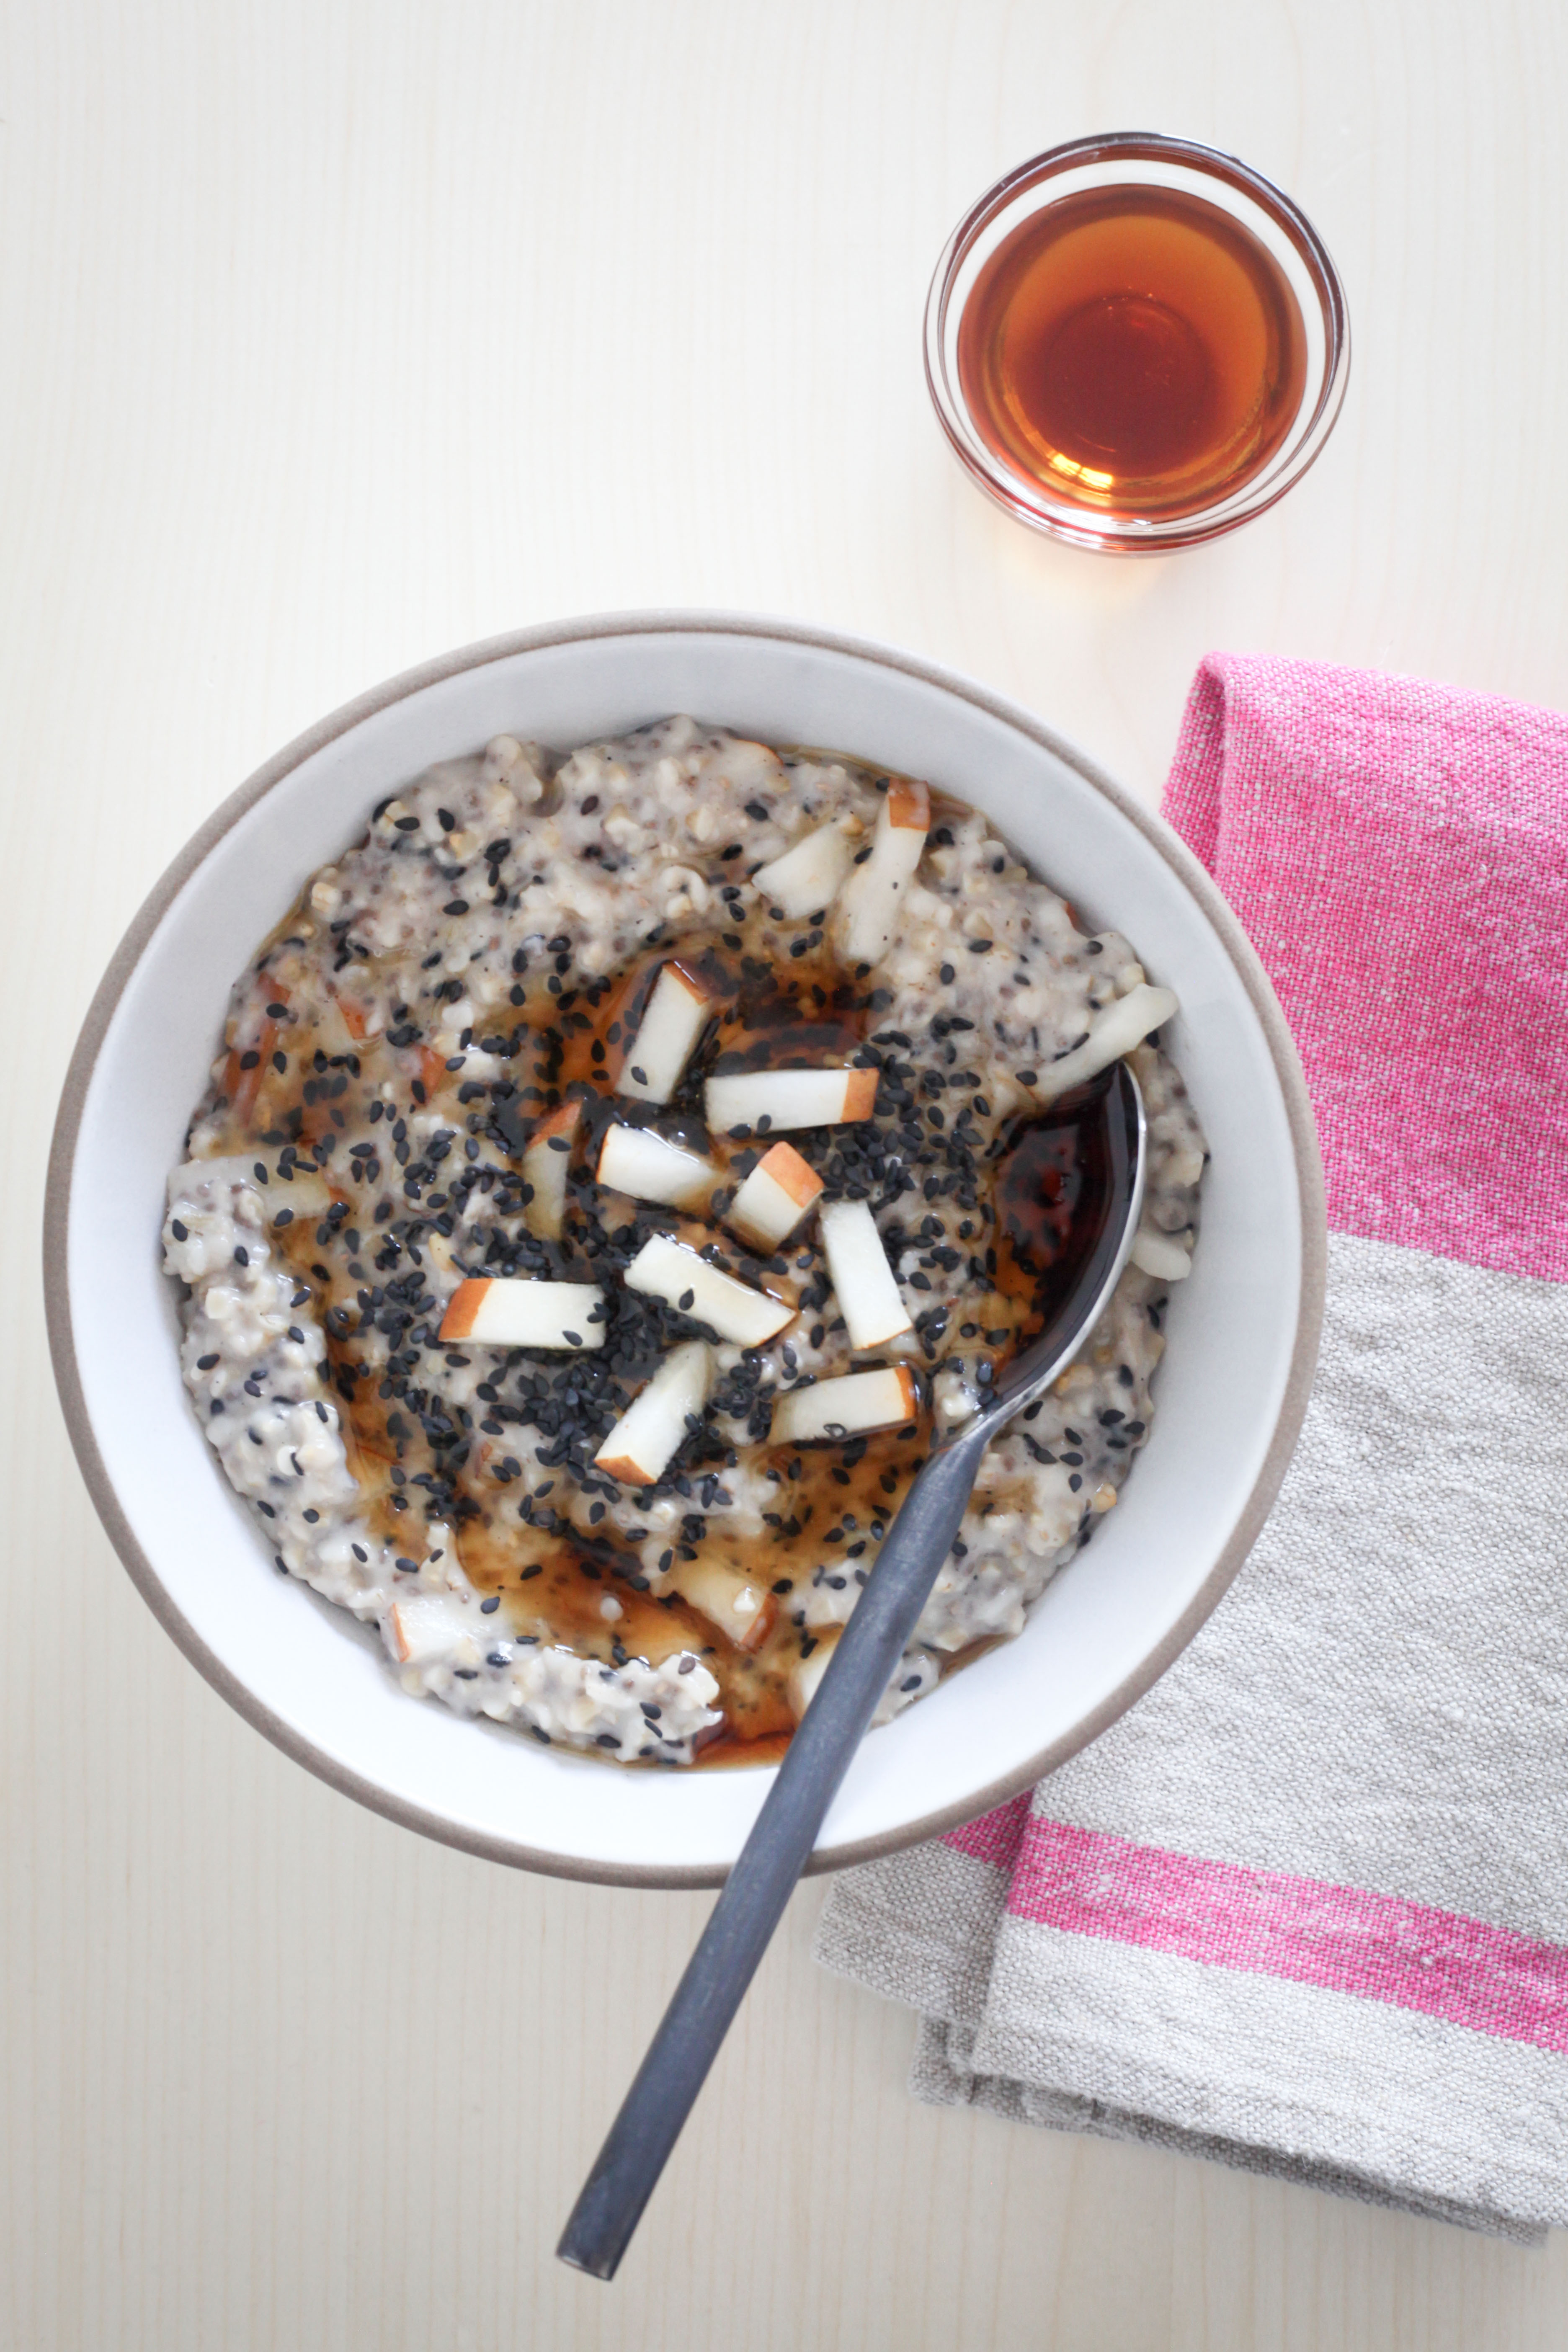 Pear-Ginger Oatmeal With Chia Seeds | amodestfeast.com | @amodestfeast